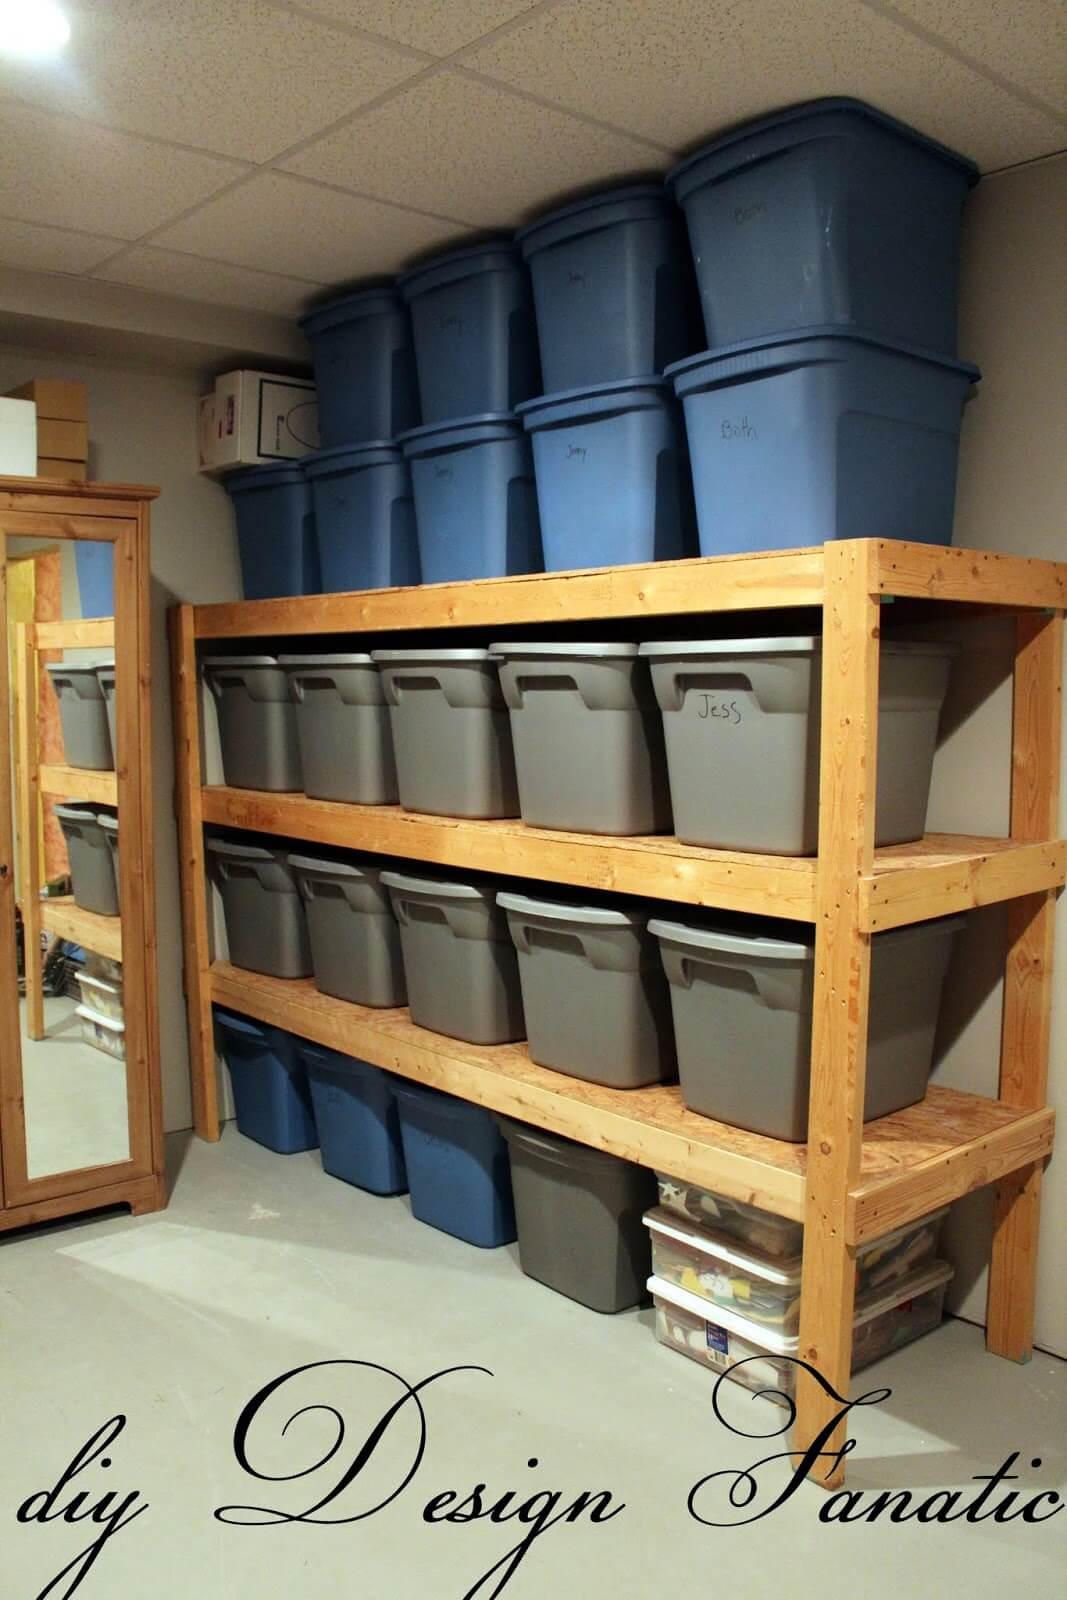 Stackable Rubbermaid Bins Keep Basements Beautiful